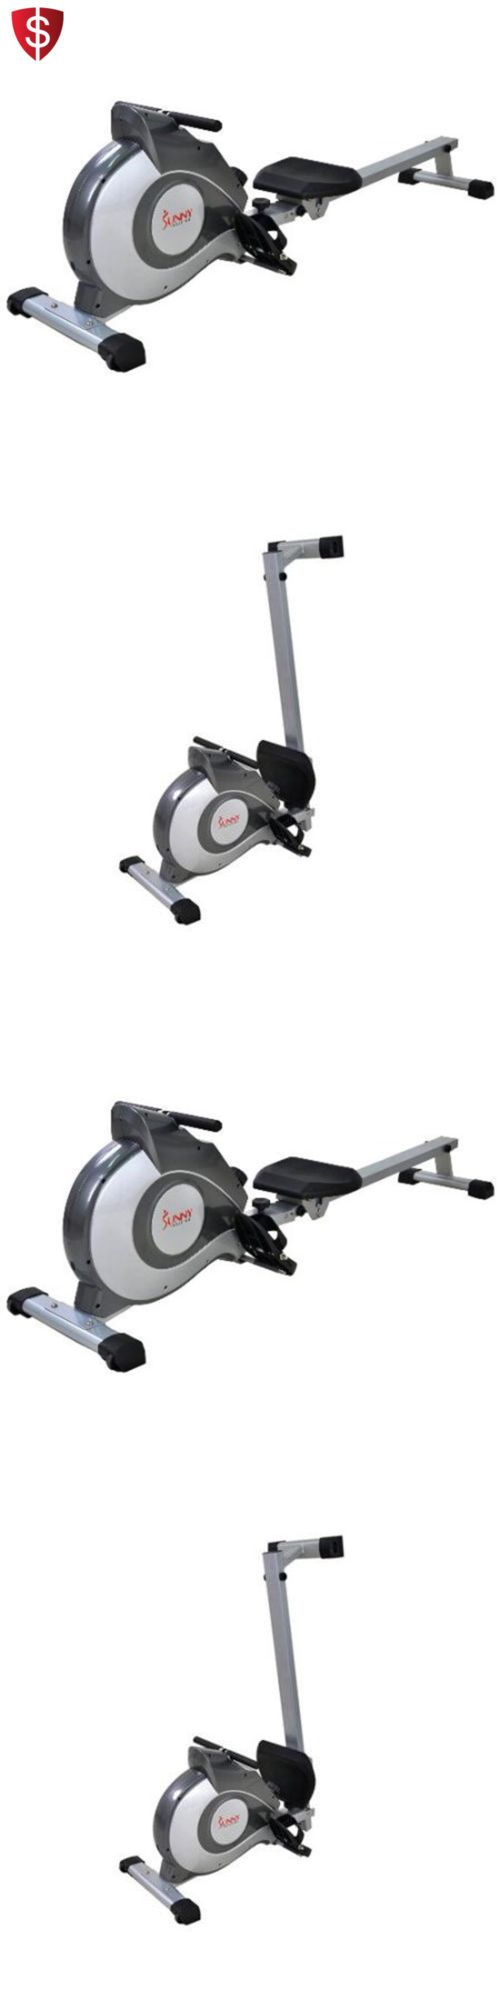 Rowing Machines 28060: Stamina Rowing Machine Exeercise Cardio Rower Body Fitness Workout Magnetic -> BUY IT NOW ONLY: $243.5 on eBay!